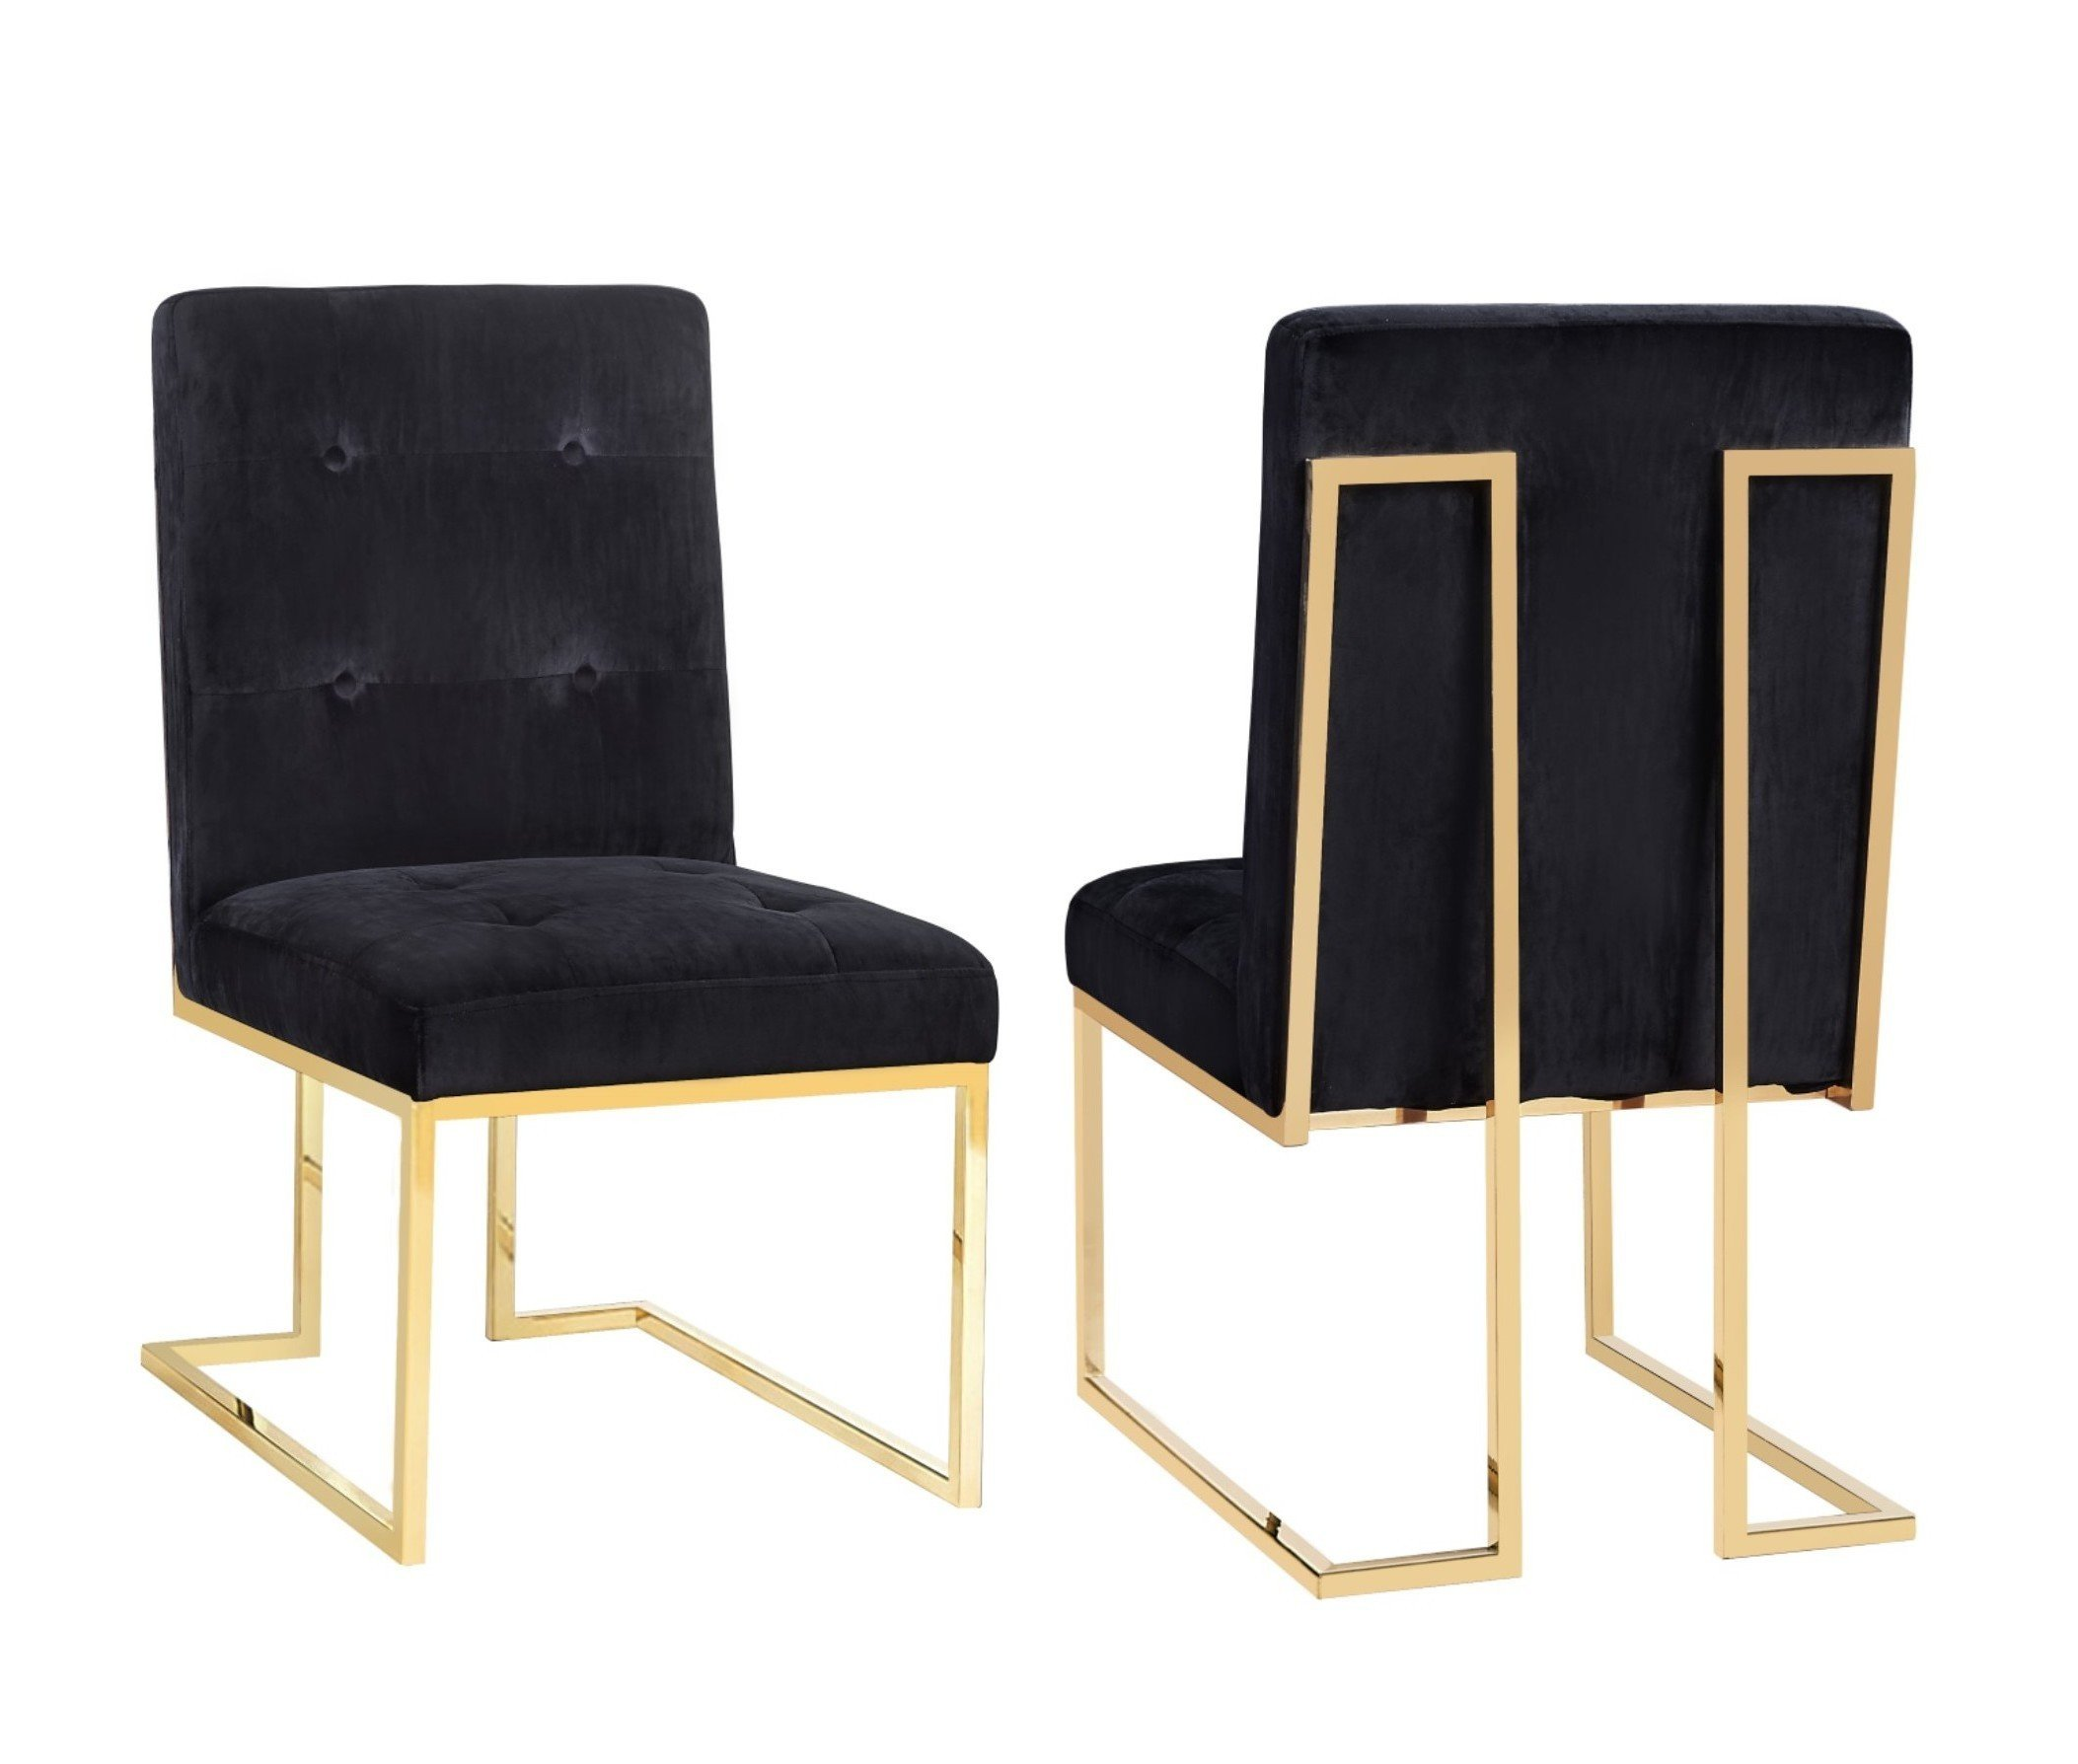 Tov Akiko Black Velvet Chair - set of 2